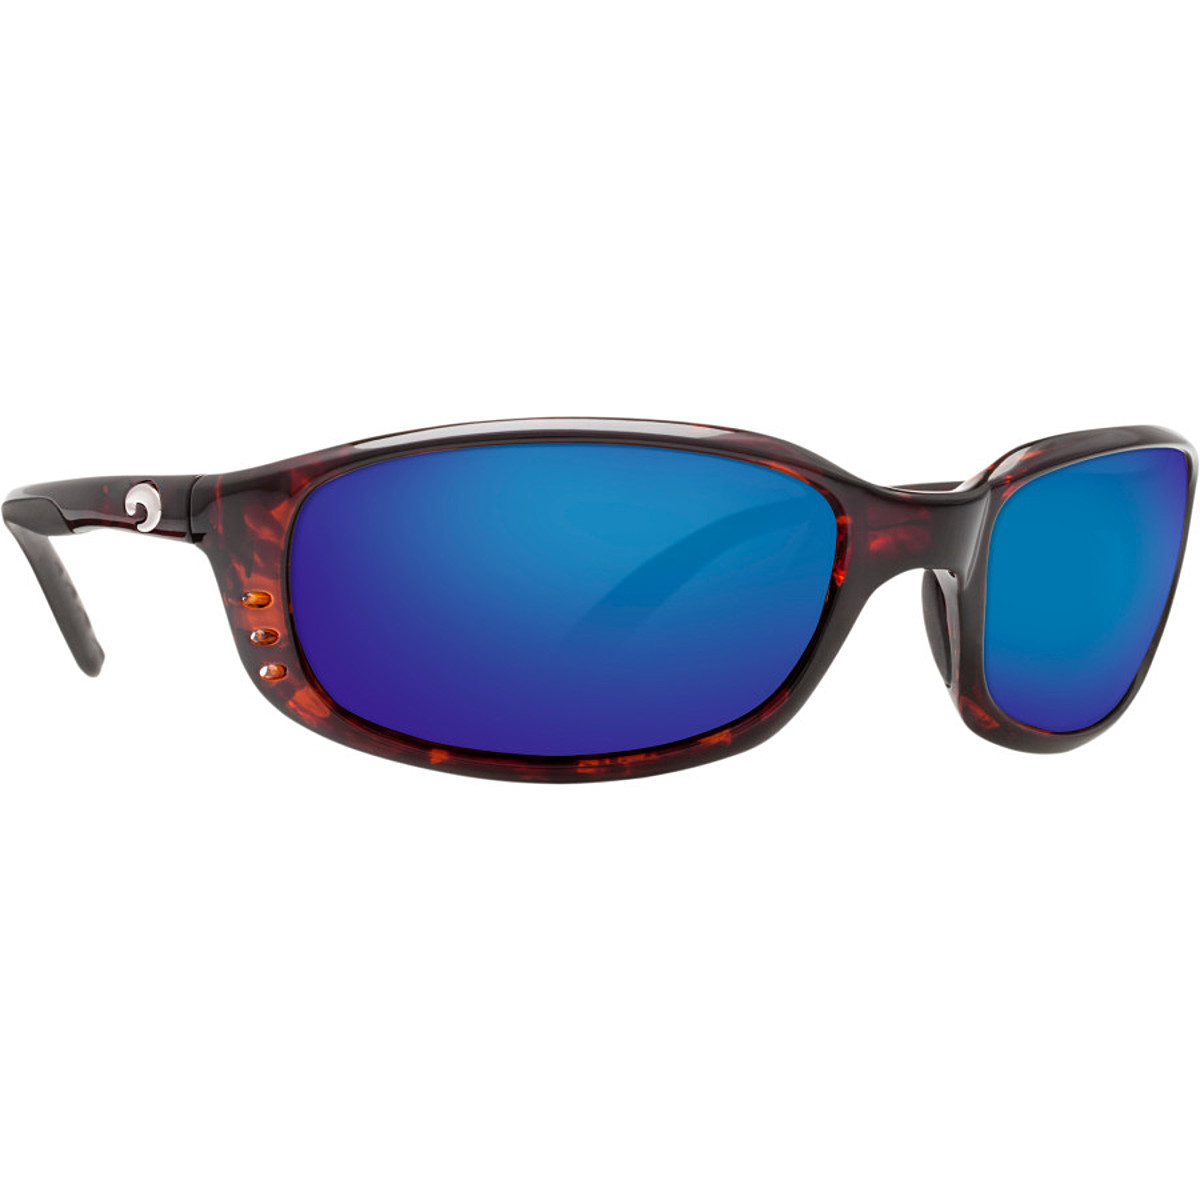 Costa Brine 580G Polarized Sunglasses - Women's